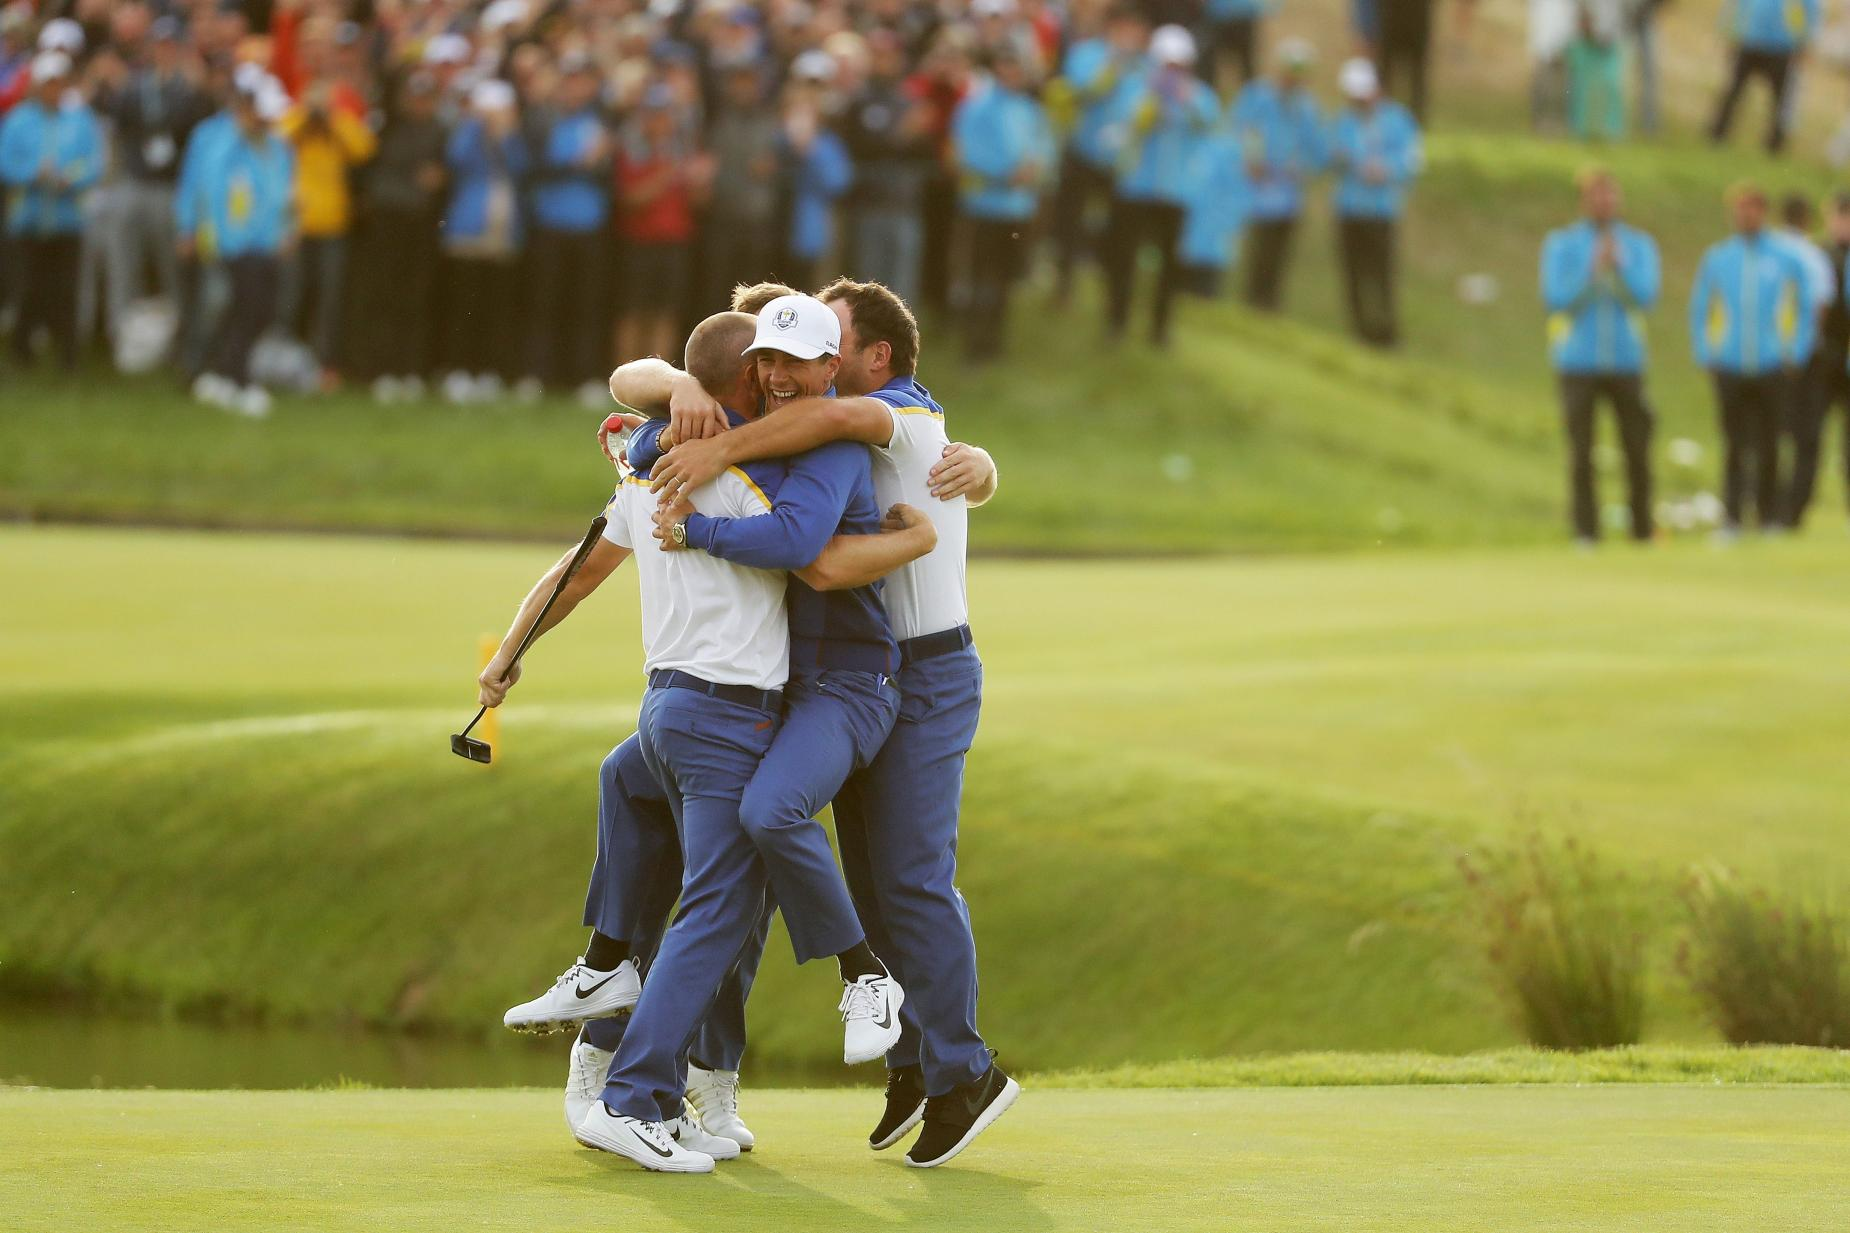 ryder-cup-alex-noren-celebration-18th-hole-2018-sunday.jpg